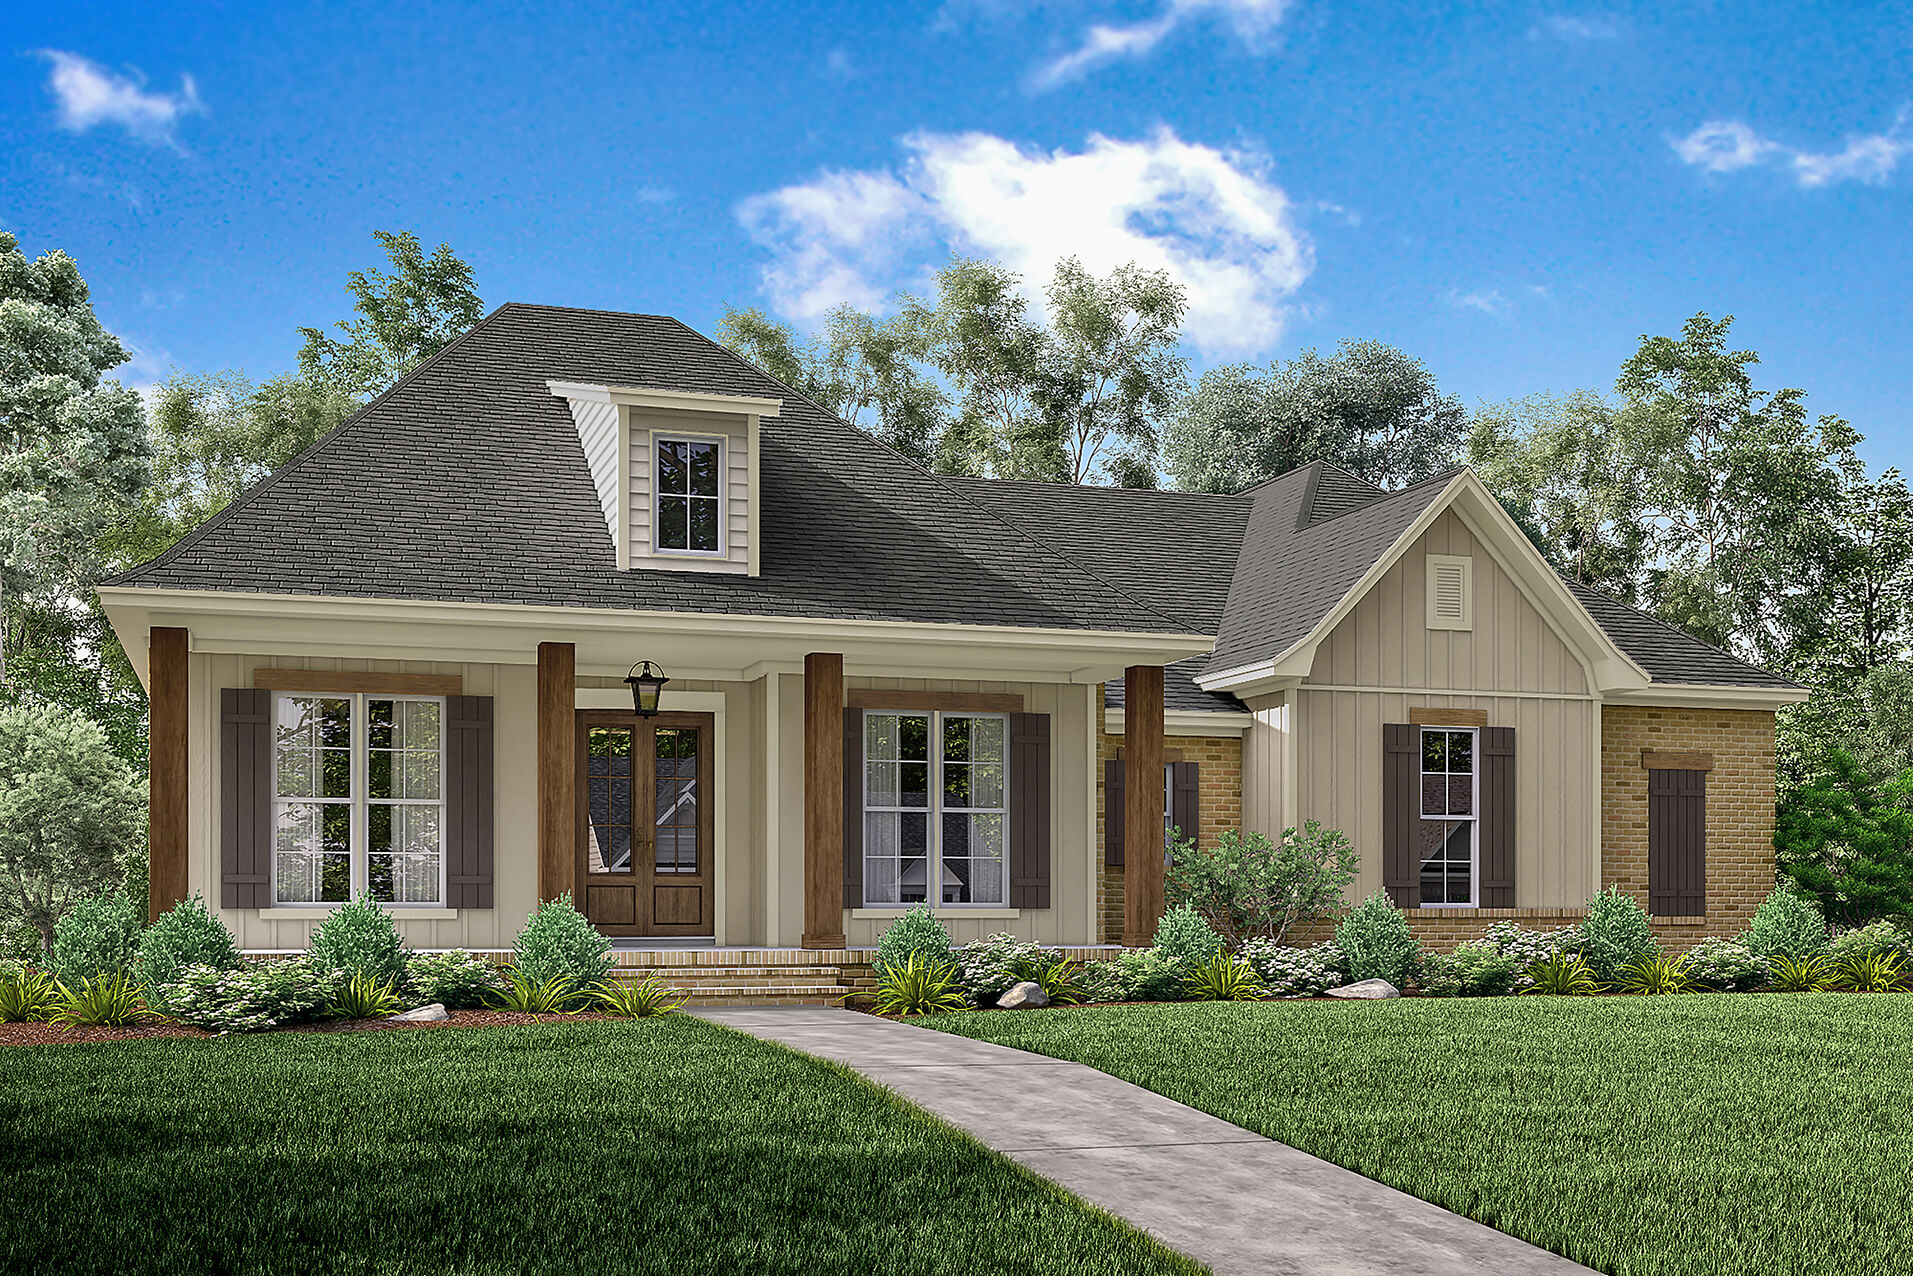 3 bedrm 1900 sq ft acadian house plan 142 1163 for Plan houses